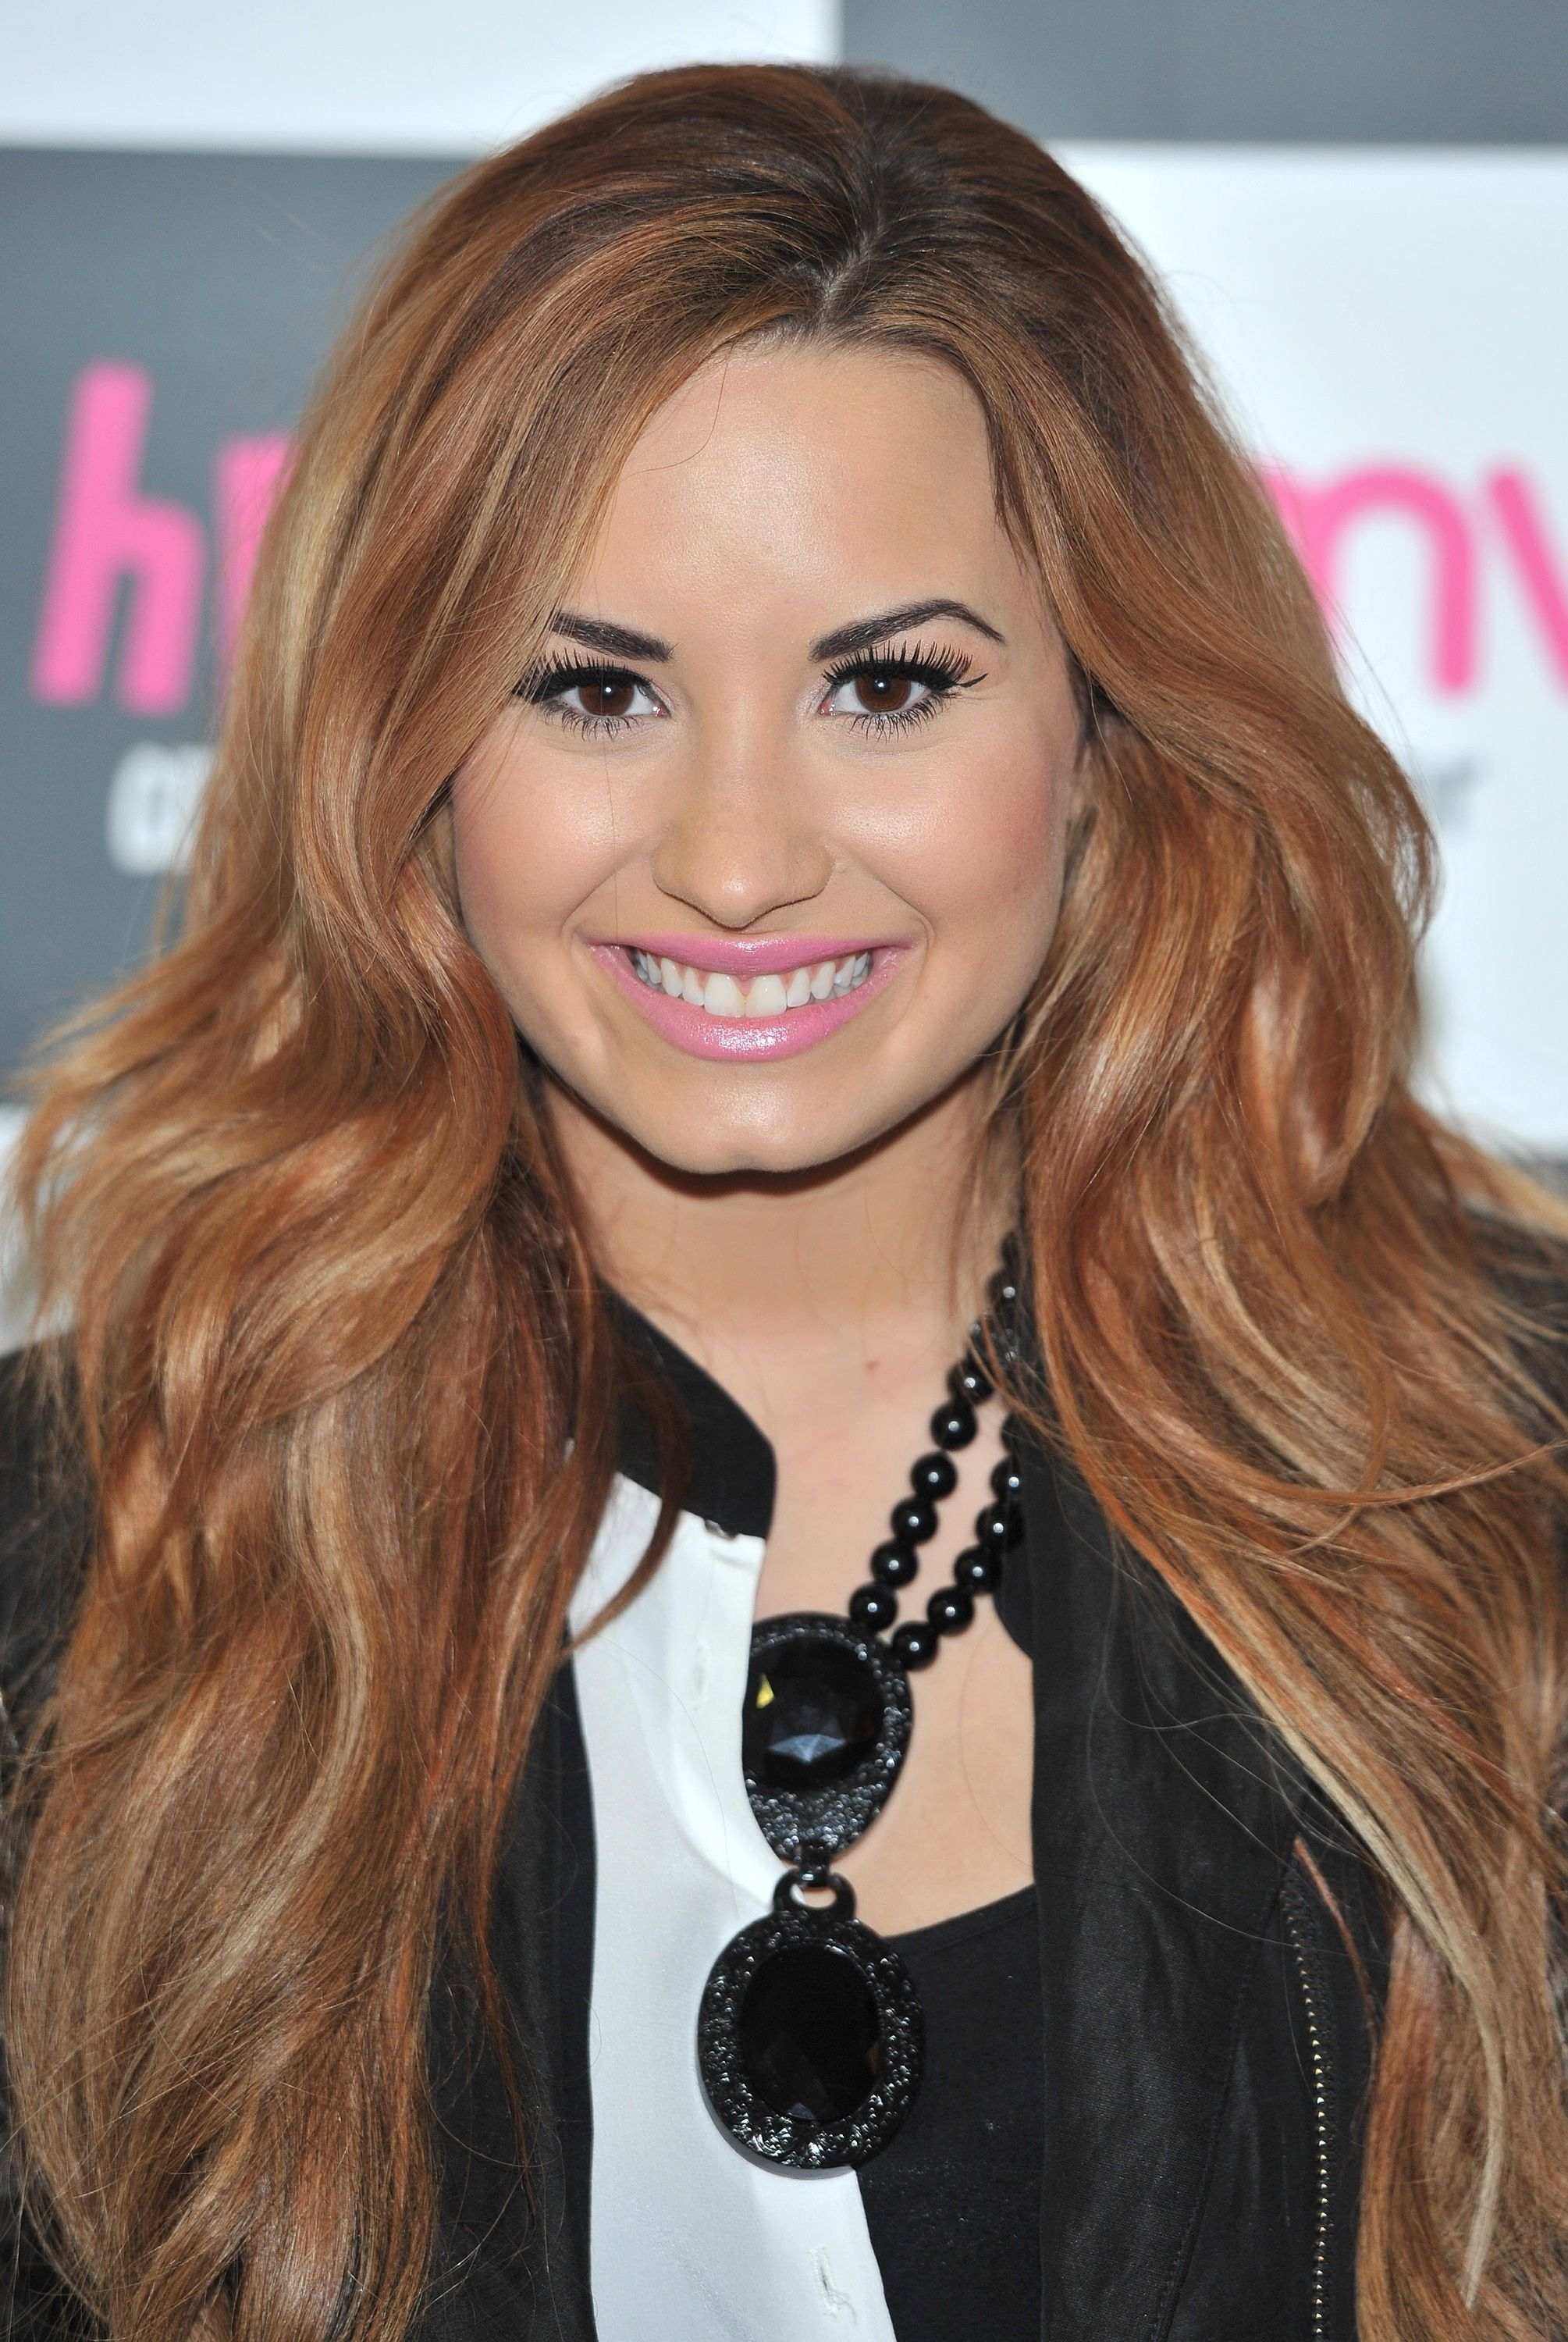 Demi Lovato The Xfactor Is Demi Lovato Going To Be An X Factor